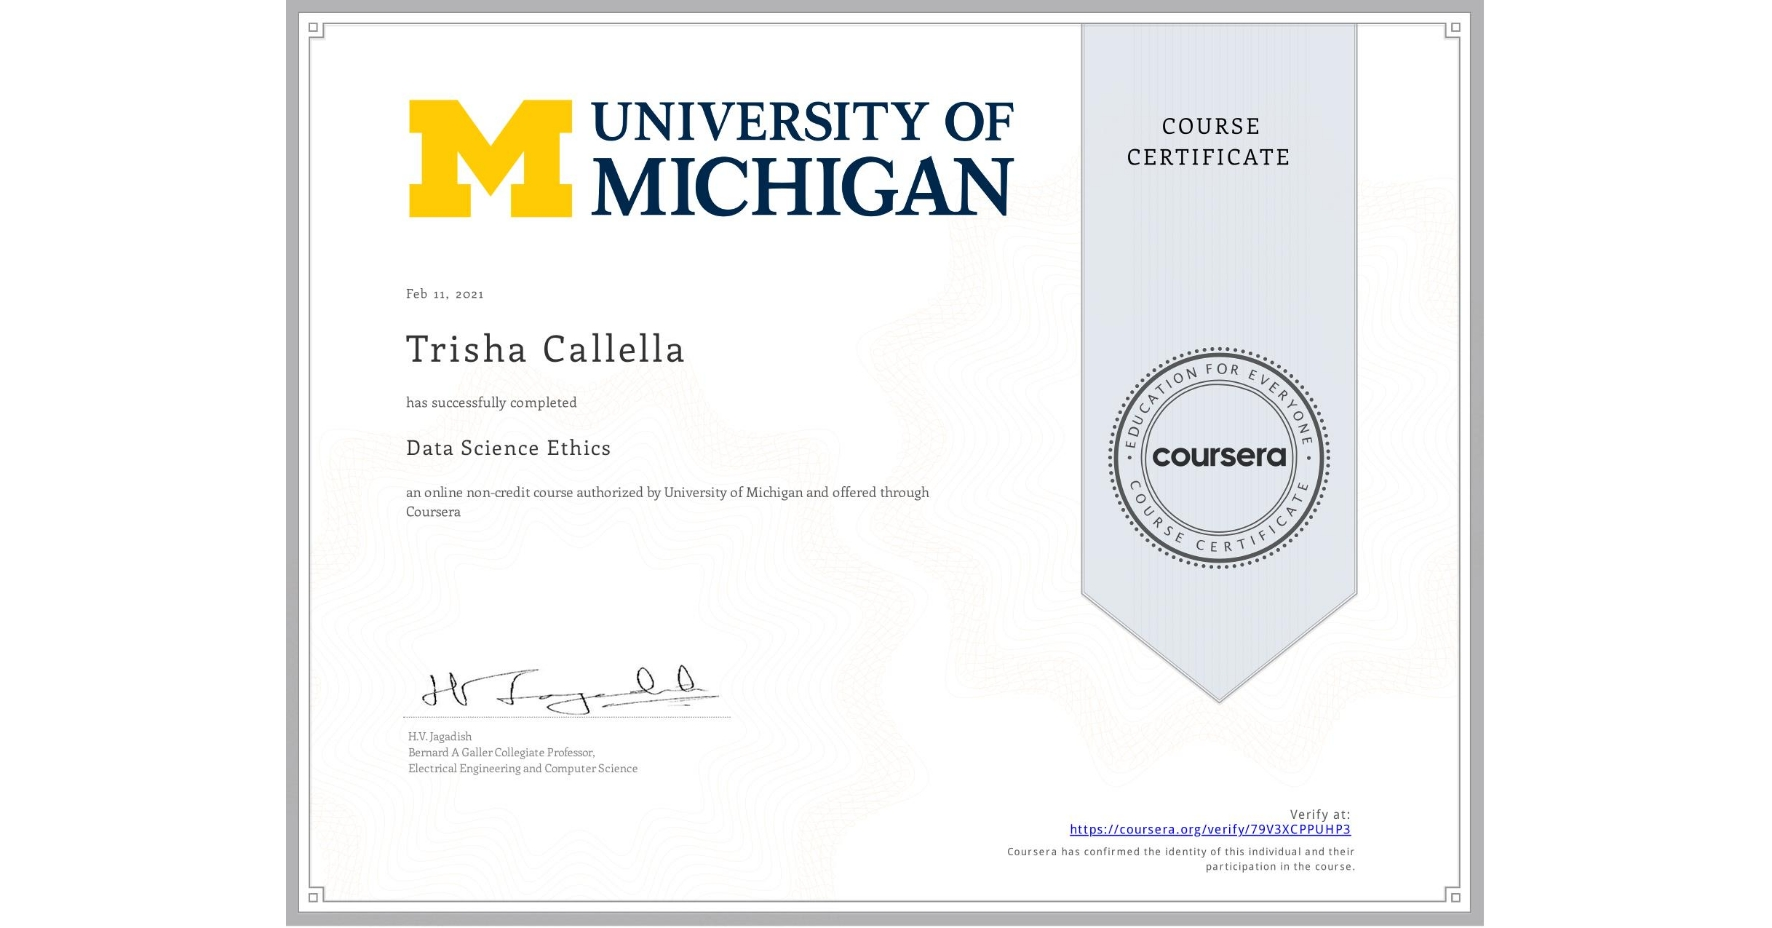 View certificate for Trisha Callella, Data Science Ethics, an online non-credit course authorized by University of Michigan and offered through Coursera